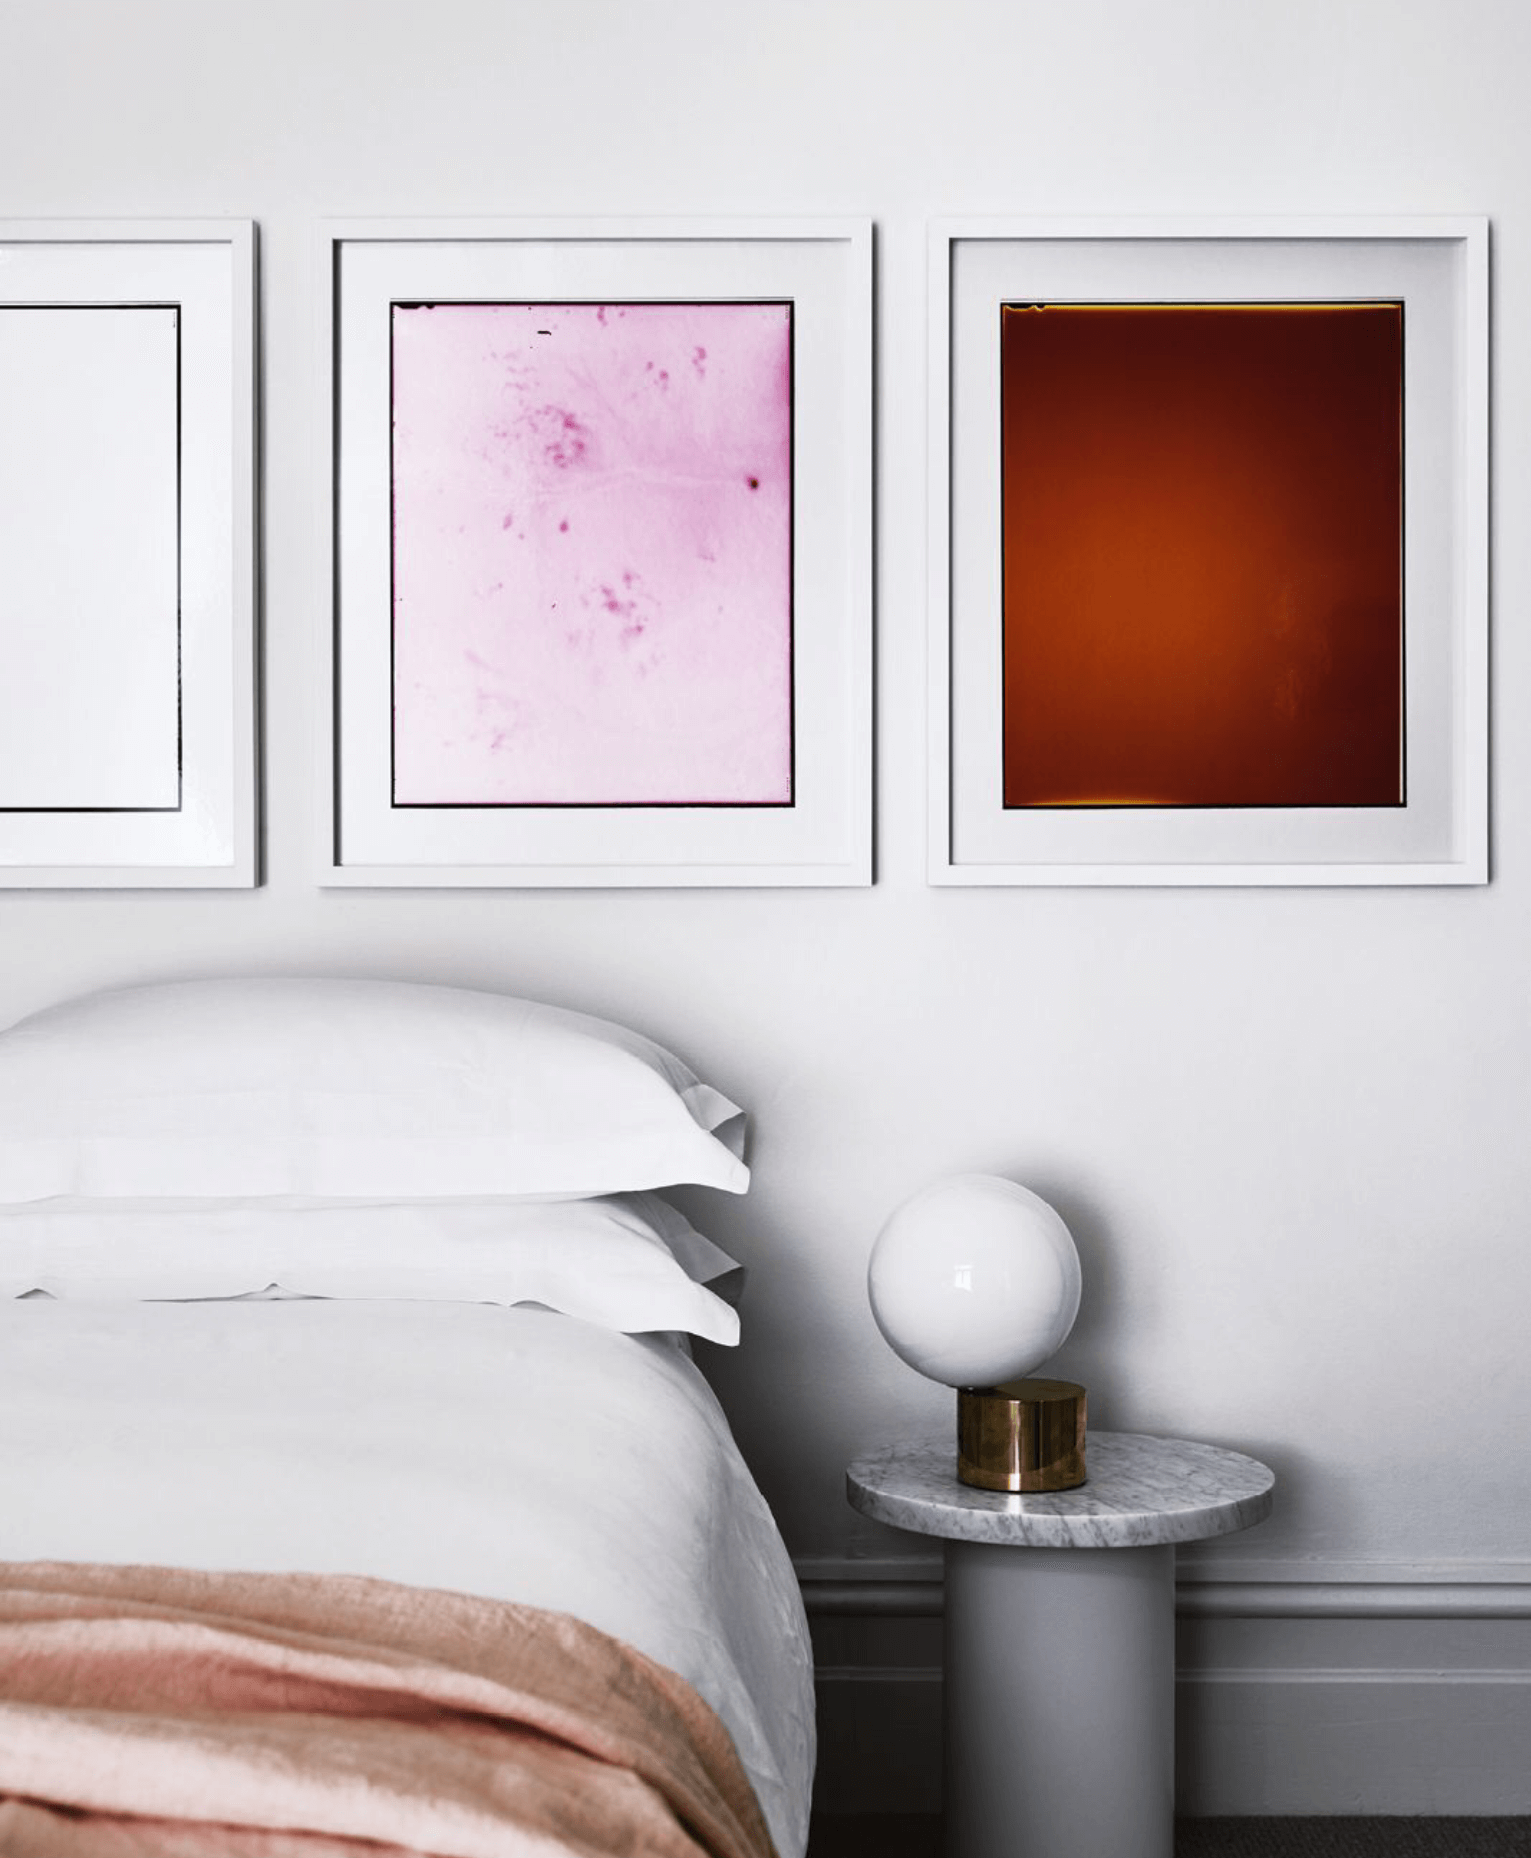 Bedroom, Justine Varga wall art, Tip of the Tongue Table lamp by Michael Anastassiades, 315 Enoki side table by Philipp Mainzer